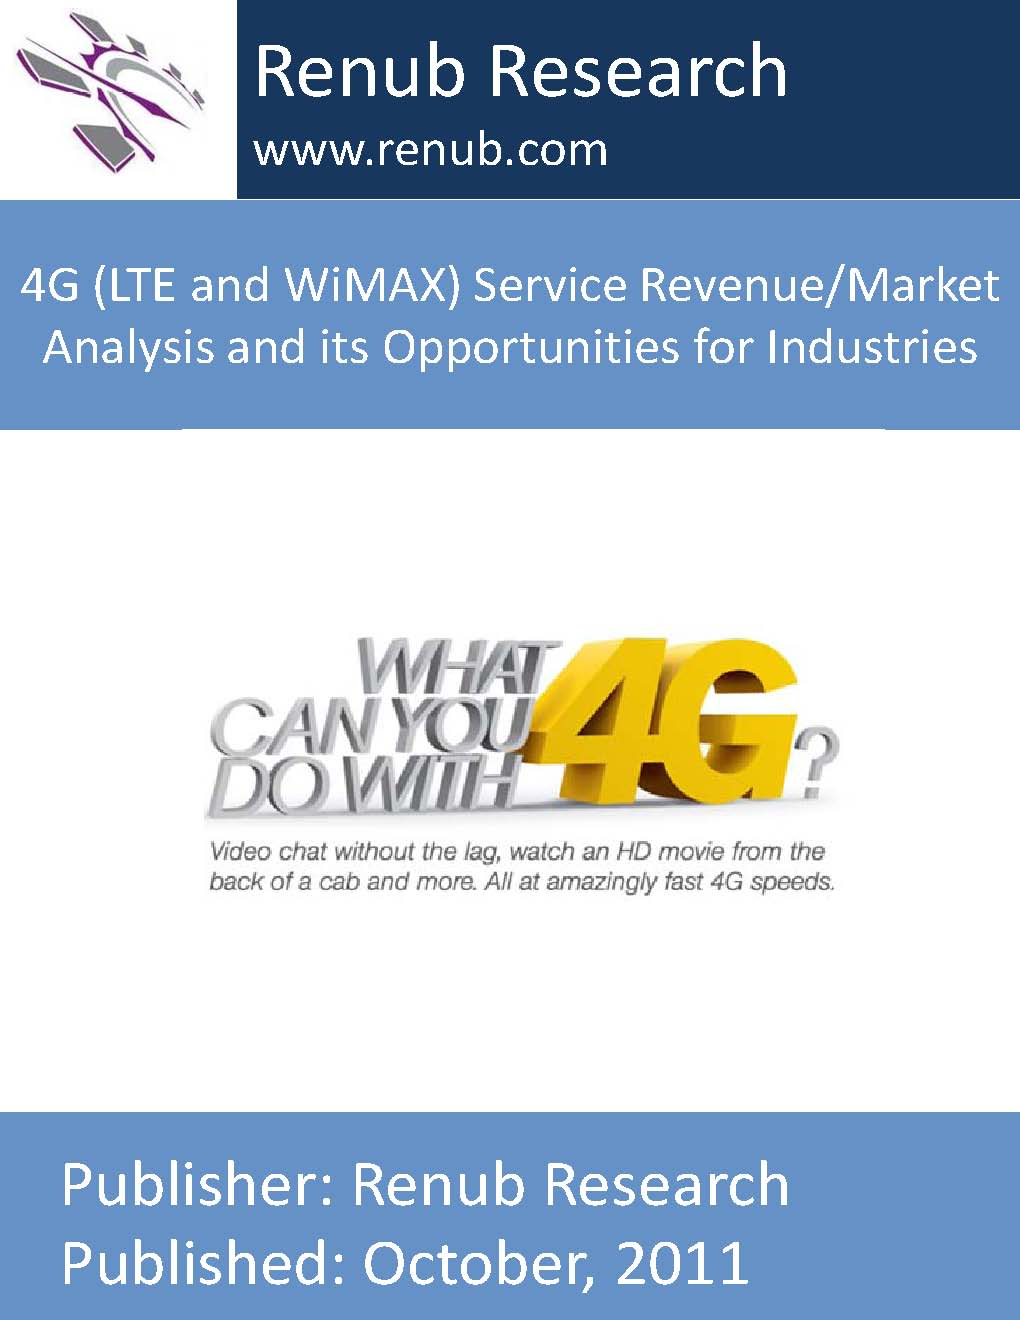 4G (LTE and WiMAX) Service Revenue/Market Analysis and its Opportunities for Industries